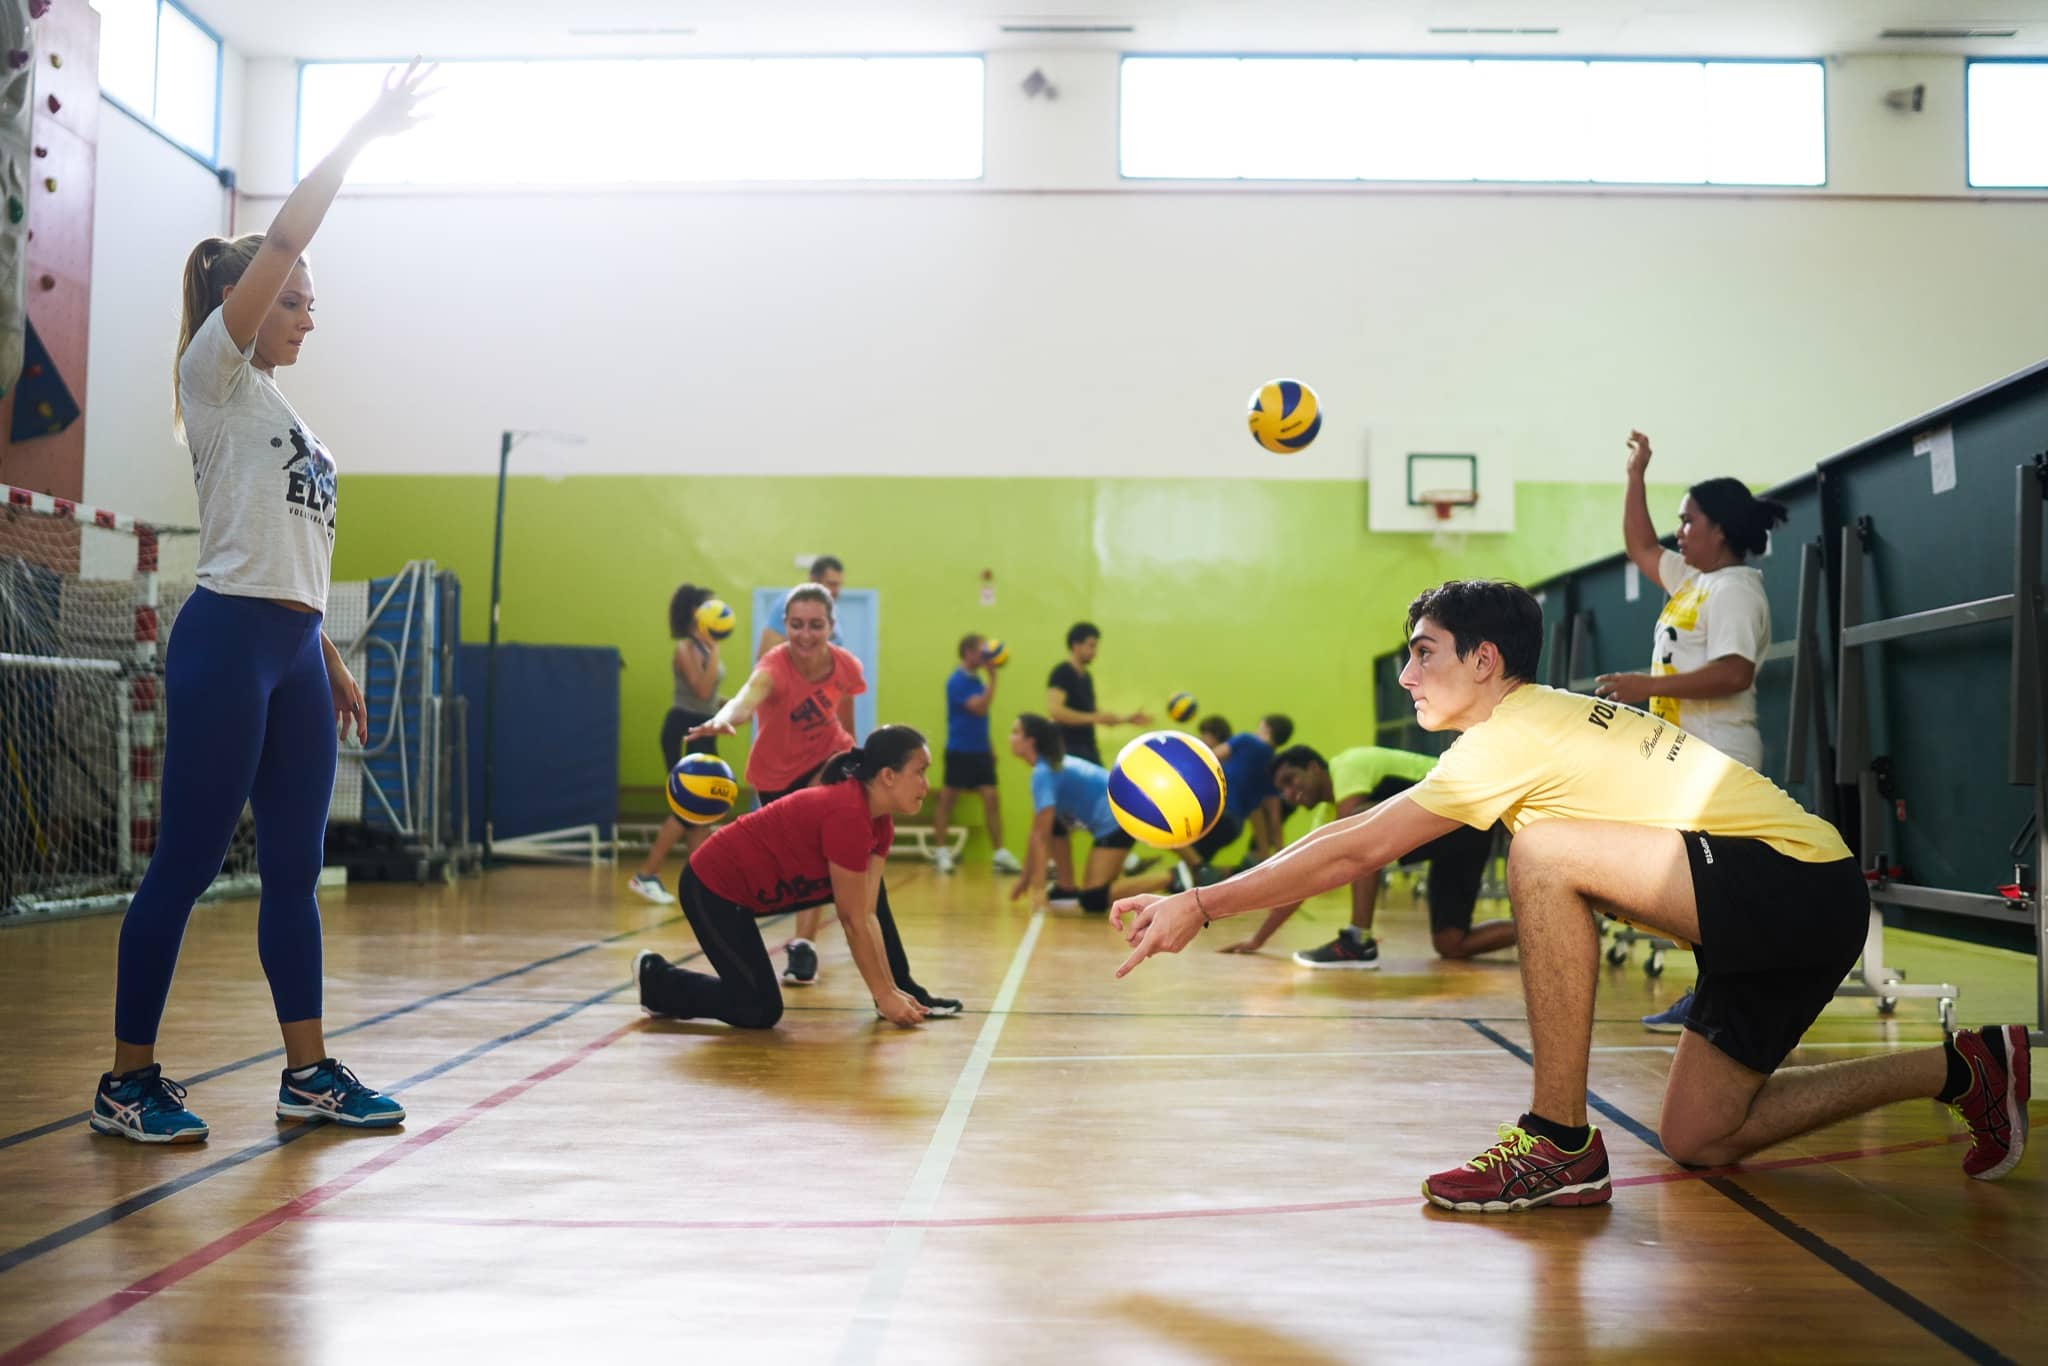 volleyball-academy-dubai-photo-00004